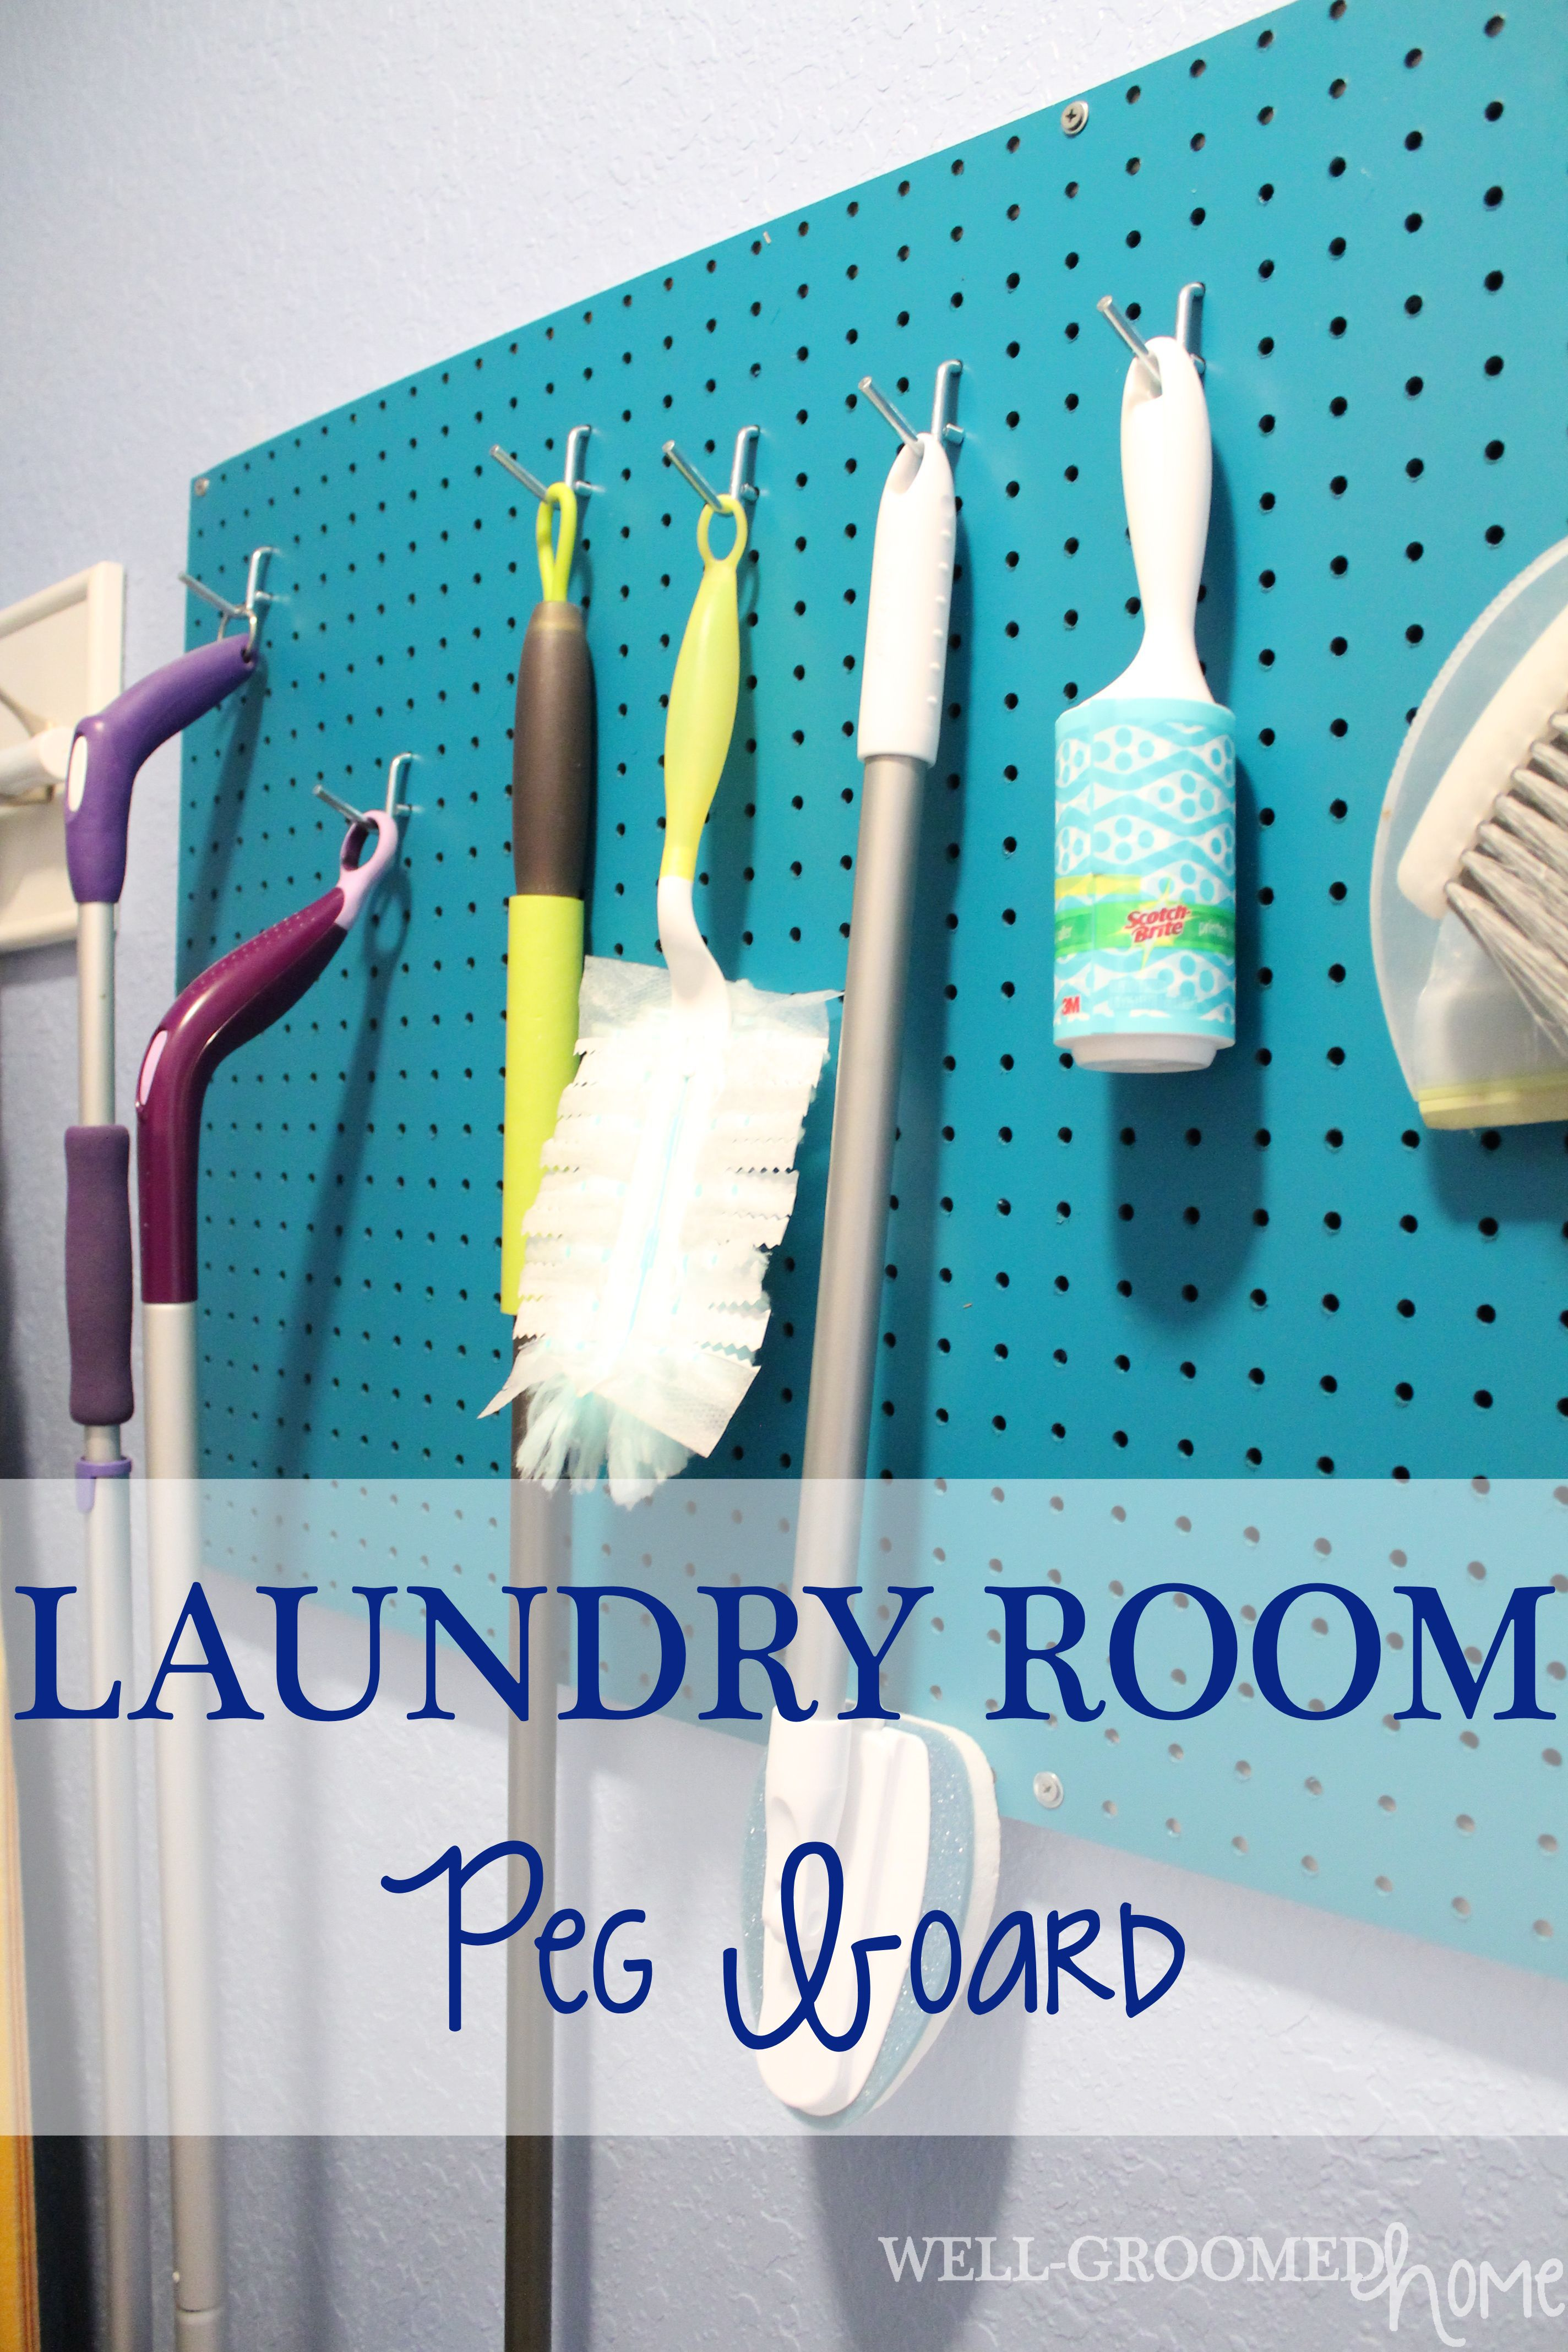 Laundry Room Peg Board Well Groomed Home